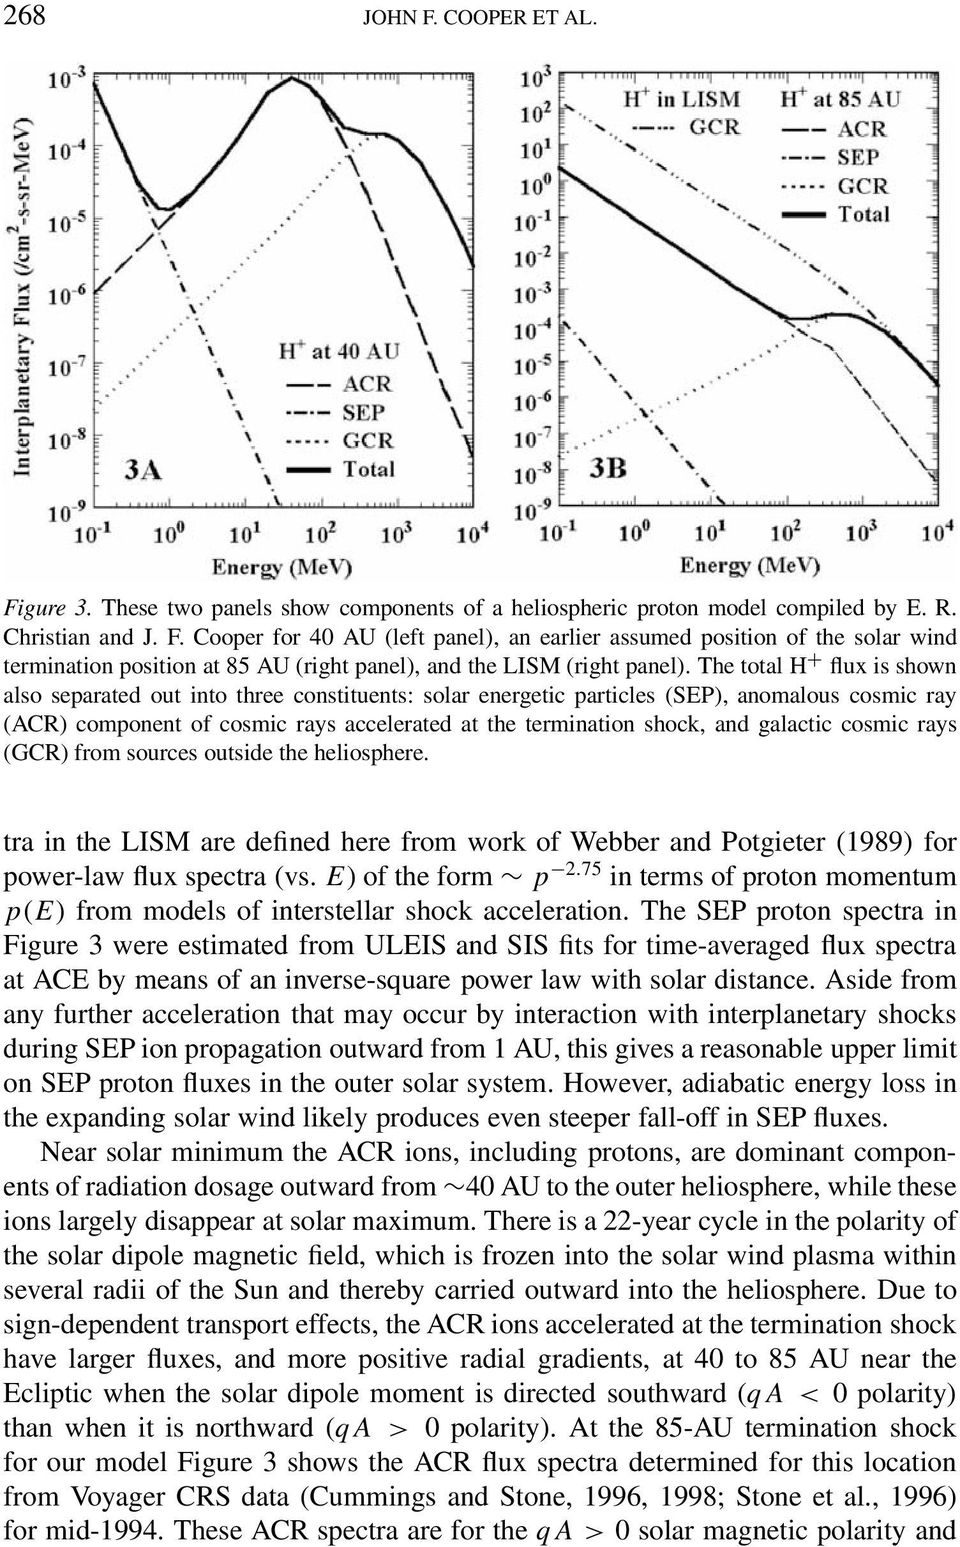 galactic cosmic rays (GCR) from sources outside the heliosphere. tra in the LISM are defined here from work of Webber and Potgieter (1989) for power-law flux spectra (vs. E) of the form p 2.